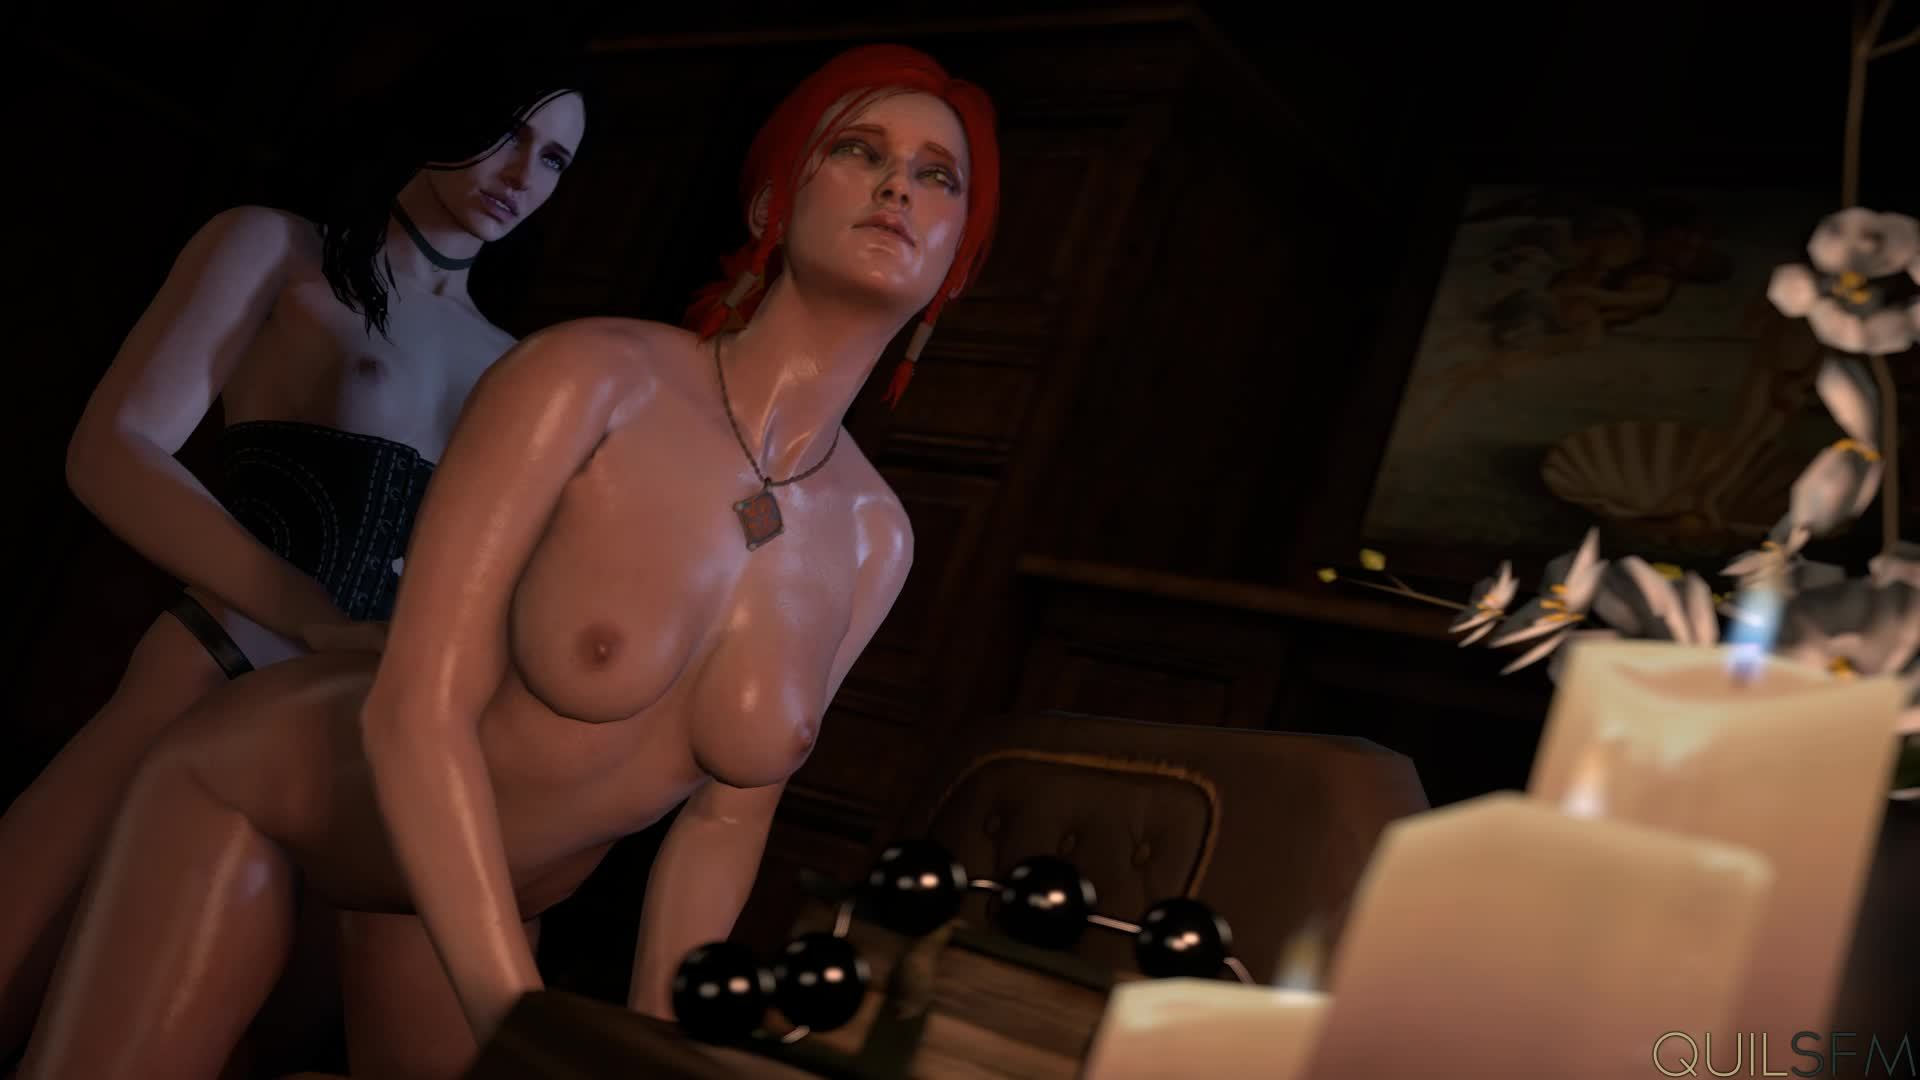 The witcher 3 sex gif erotic video